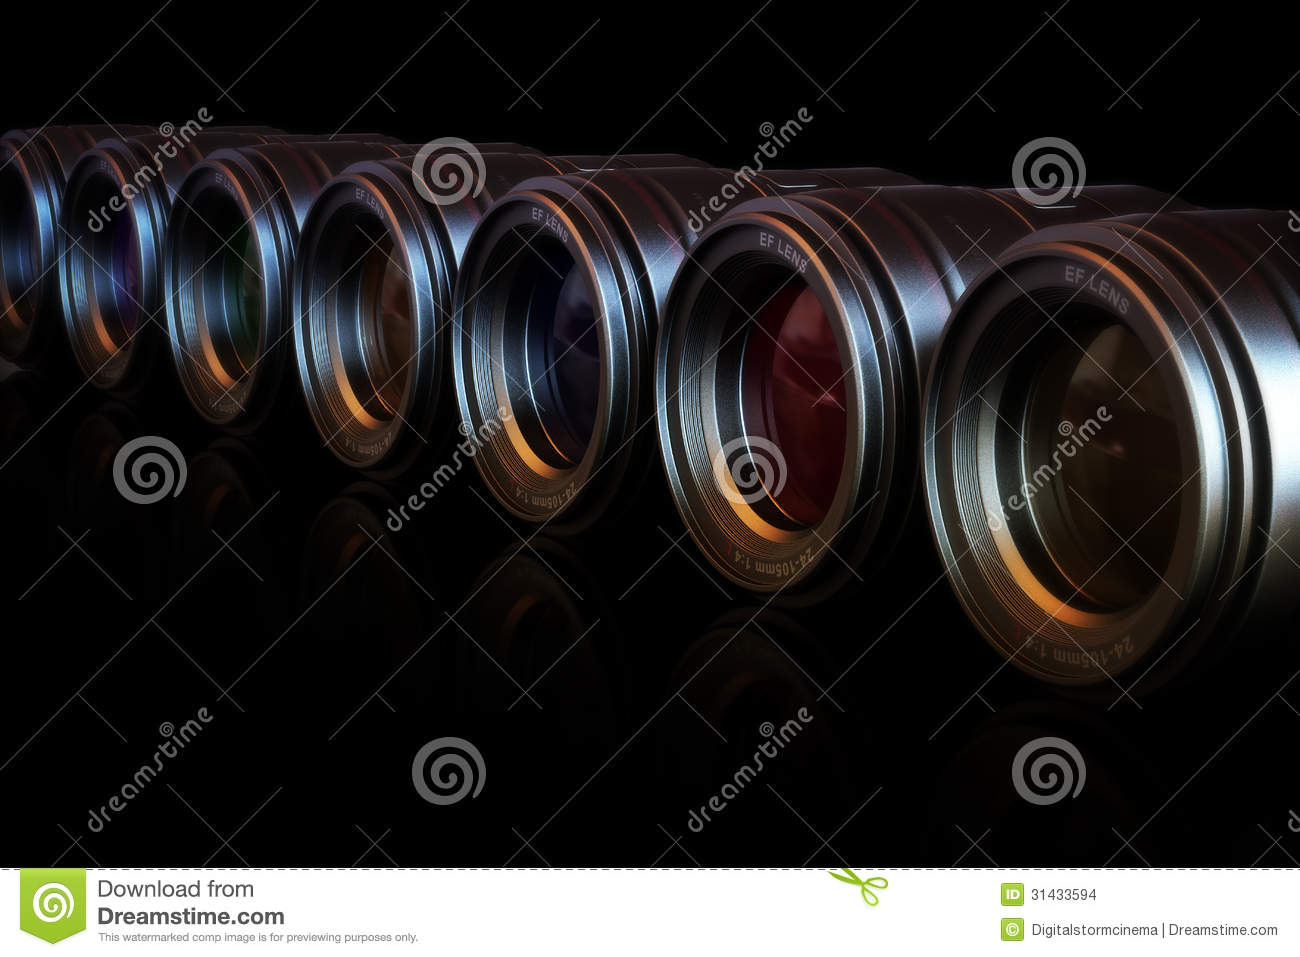 theme in lenses Your all-in-one photography site for gear news, camera reviews, hot deals, real-time rumors, editorials and more.